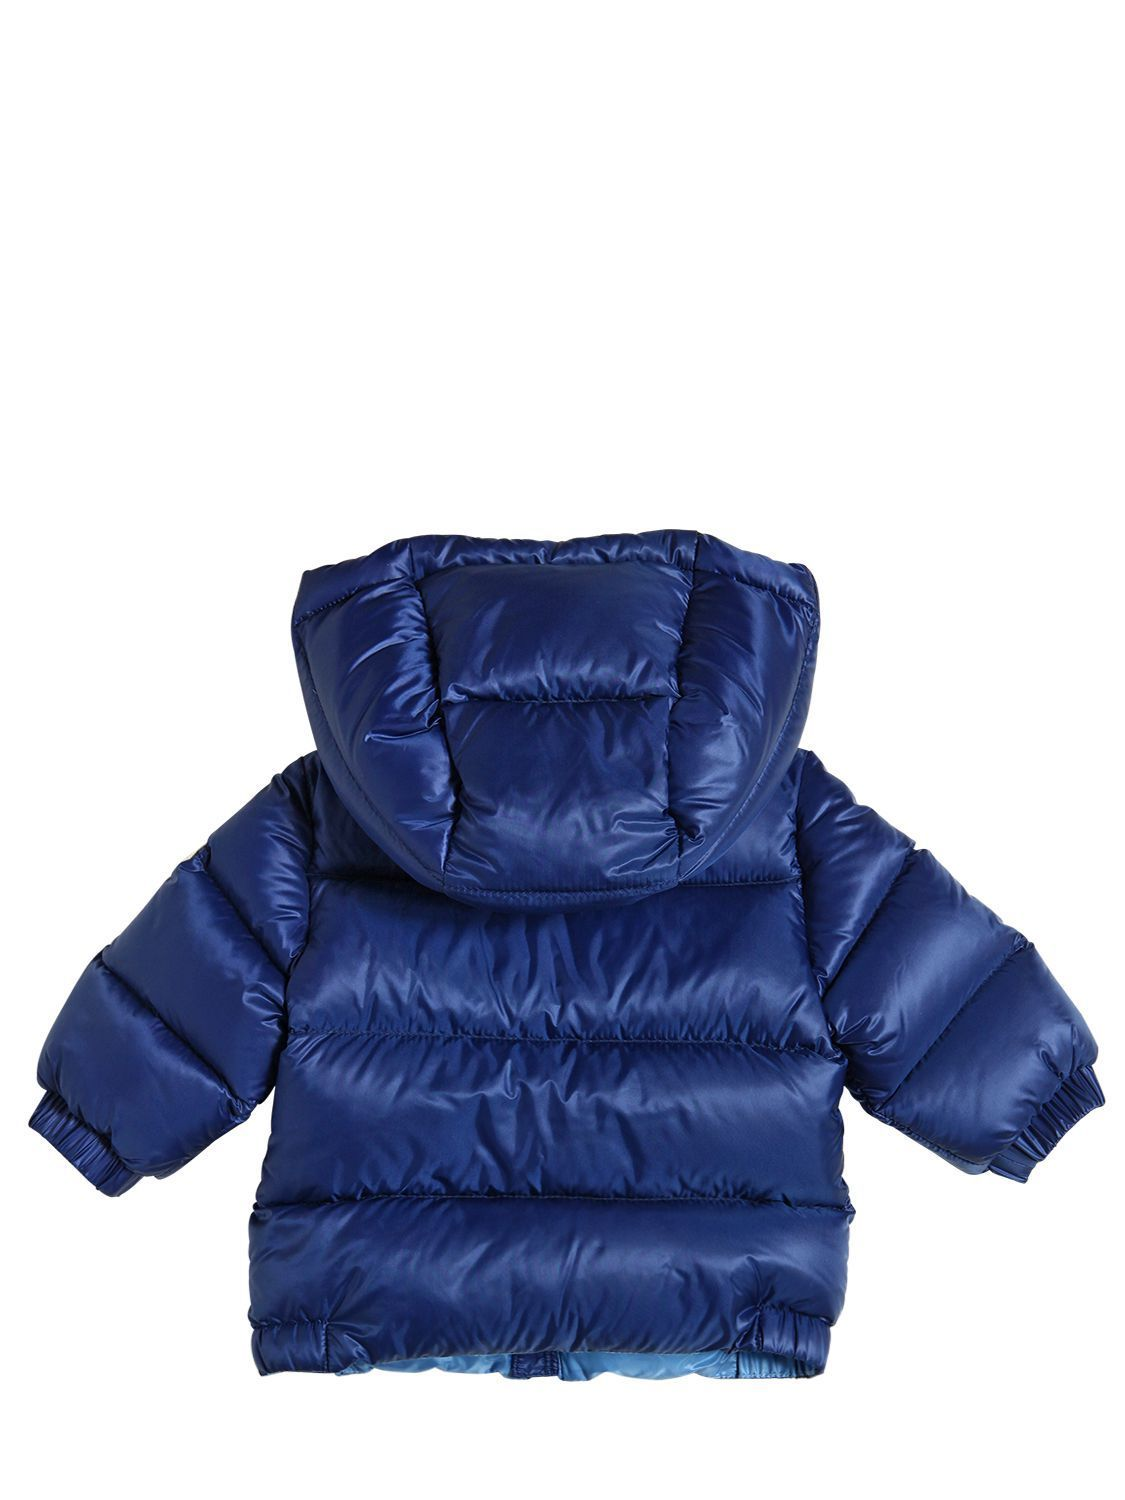 TOPセラー賞!17AW┃MONCLER★0-36か月_NEW MACAIRE_ネイビー